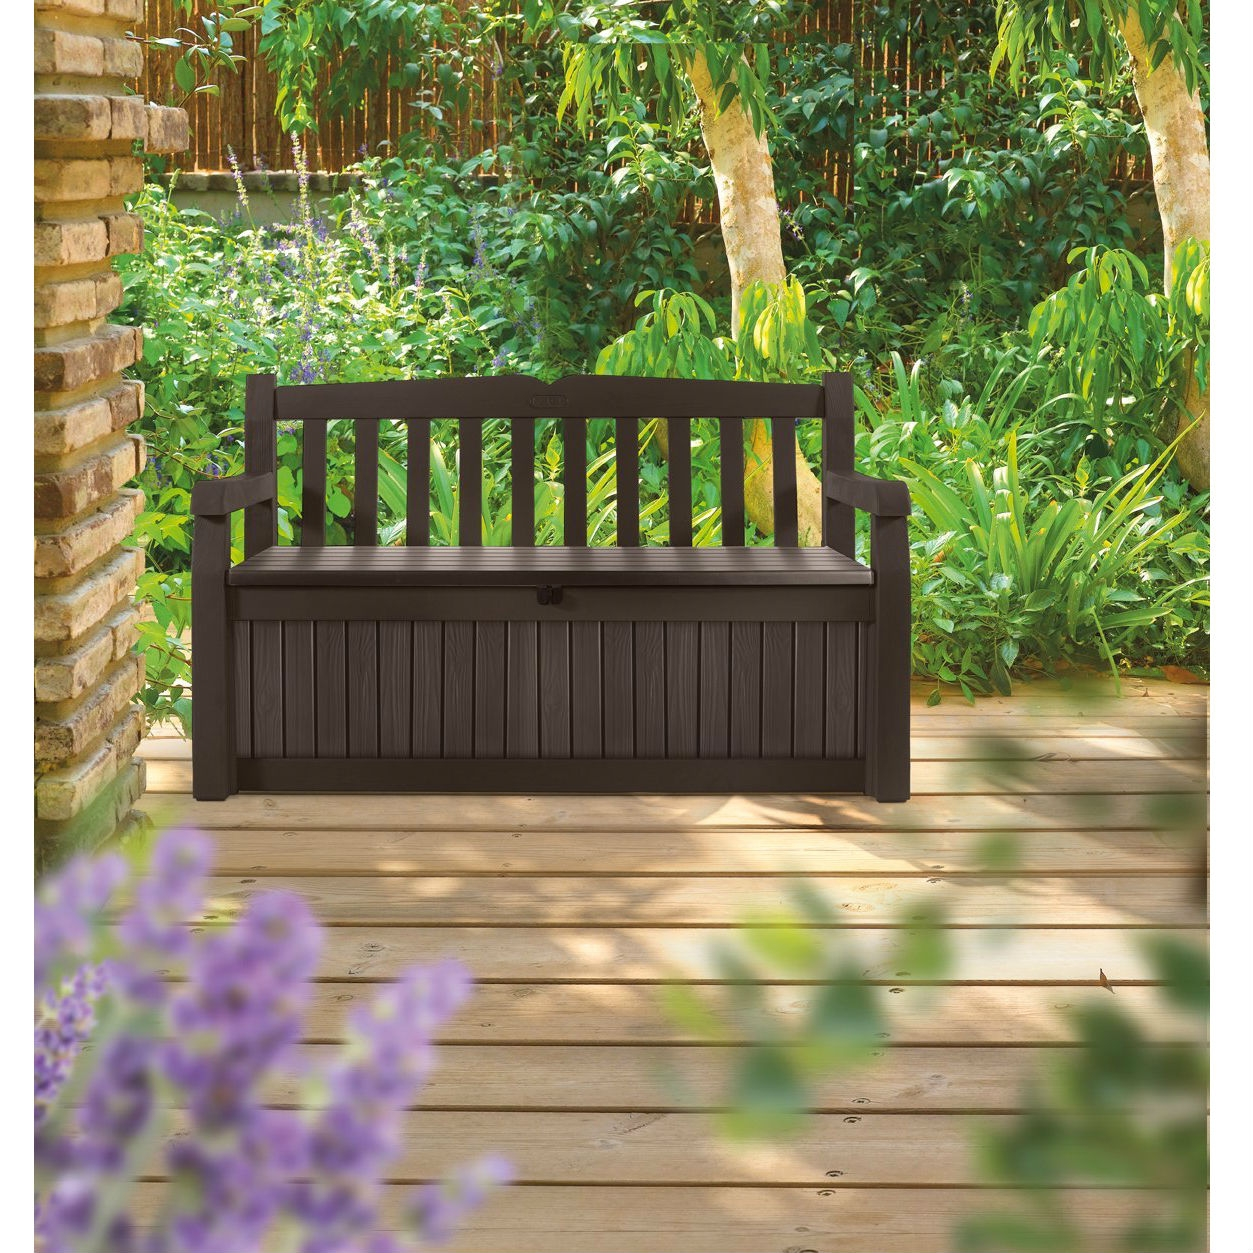 Brown Resin Outdoor Patio Garden Bench with Storage Box, KEB12942 :  Want to turn your yard into a garden paradise? This Brown Resin Outdoor Patio Garden Bench with Storage Box is a great place to start. At first glance, the Eden Bench looks like a clean, contemporary wood-style bench with comfortable seating for two adults. But hidden beneath is a large-capacity outdoor storage solution to keep your yard and garden supplies out of sight until needed. The bench is made from high-strength, all-weather and UV-protected resin. It will not warp, rust, rot, dent or peel (and its beige and brown resin never needs painting). The Eden Bench is also ventilated, but waterproof to keep contents dry. It's a comfy bench. It's a storage box. It's practically perfect. Contoured back and arm rests.